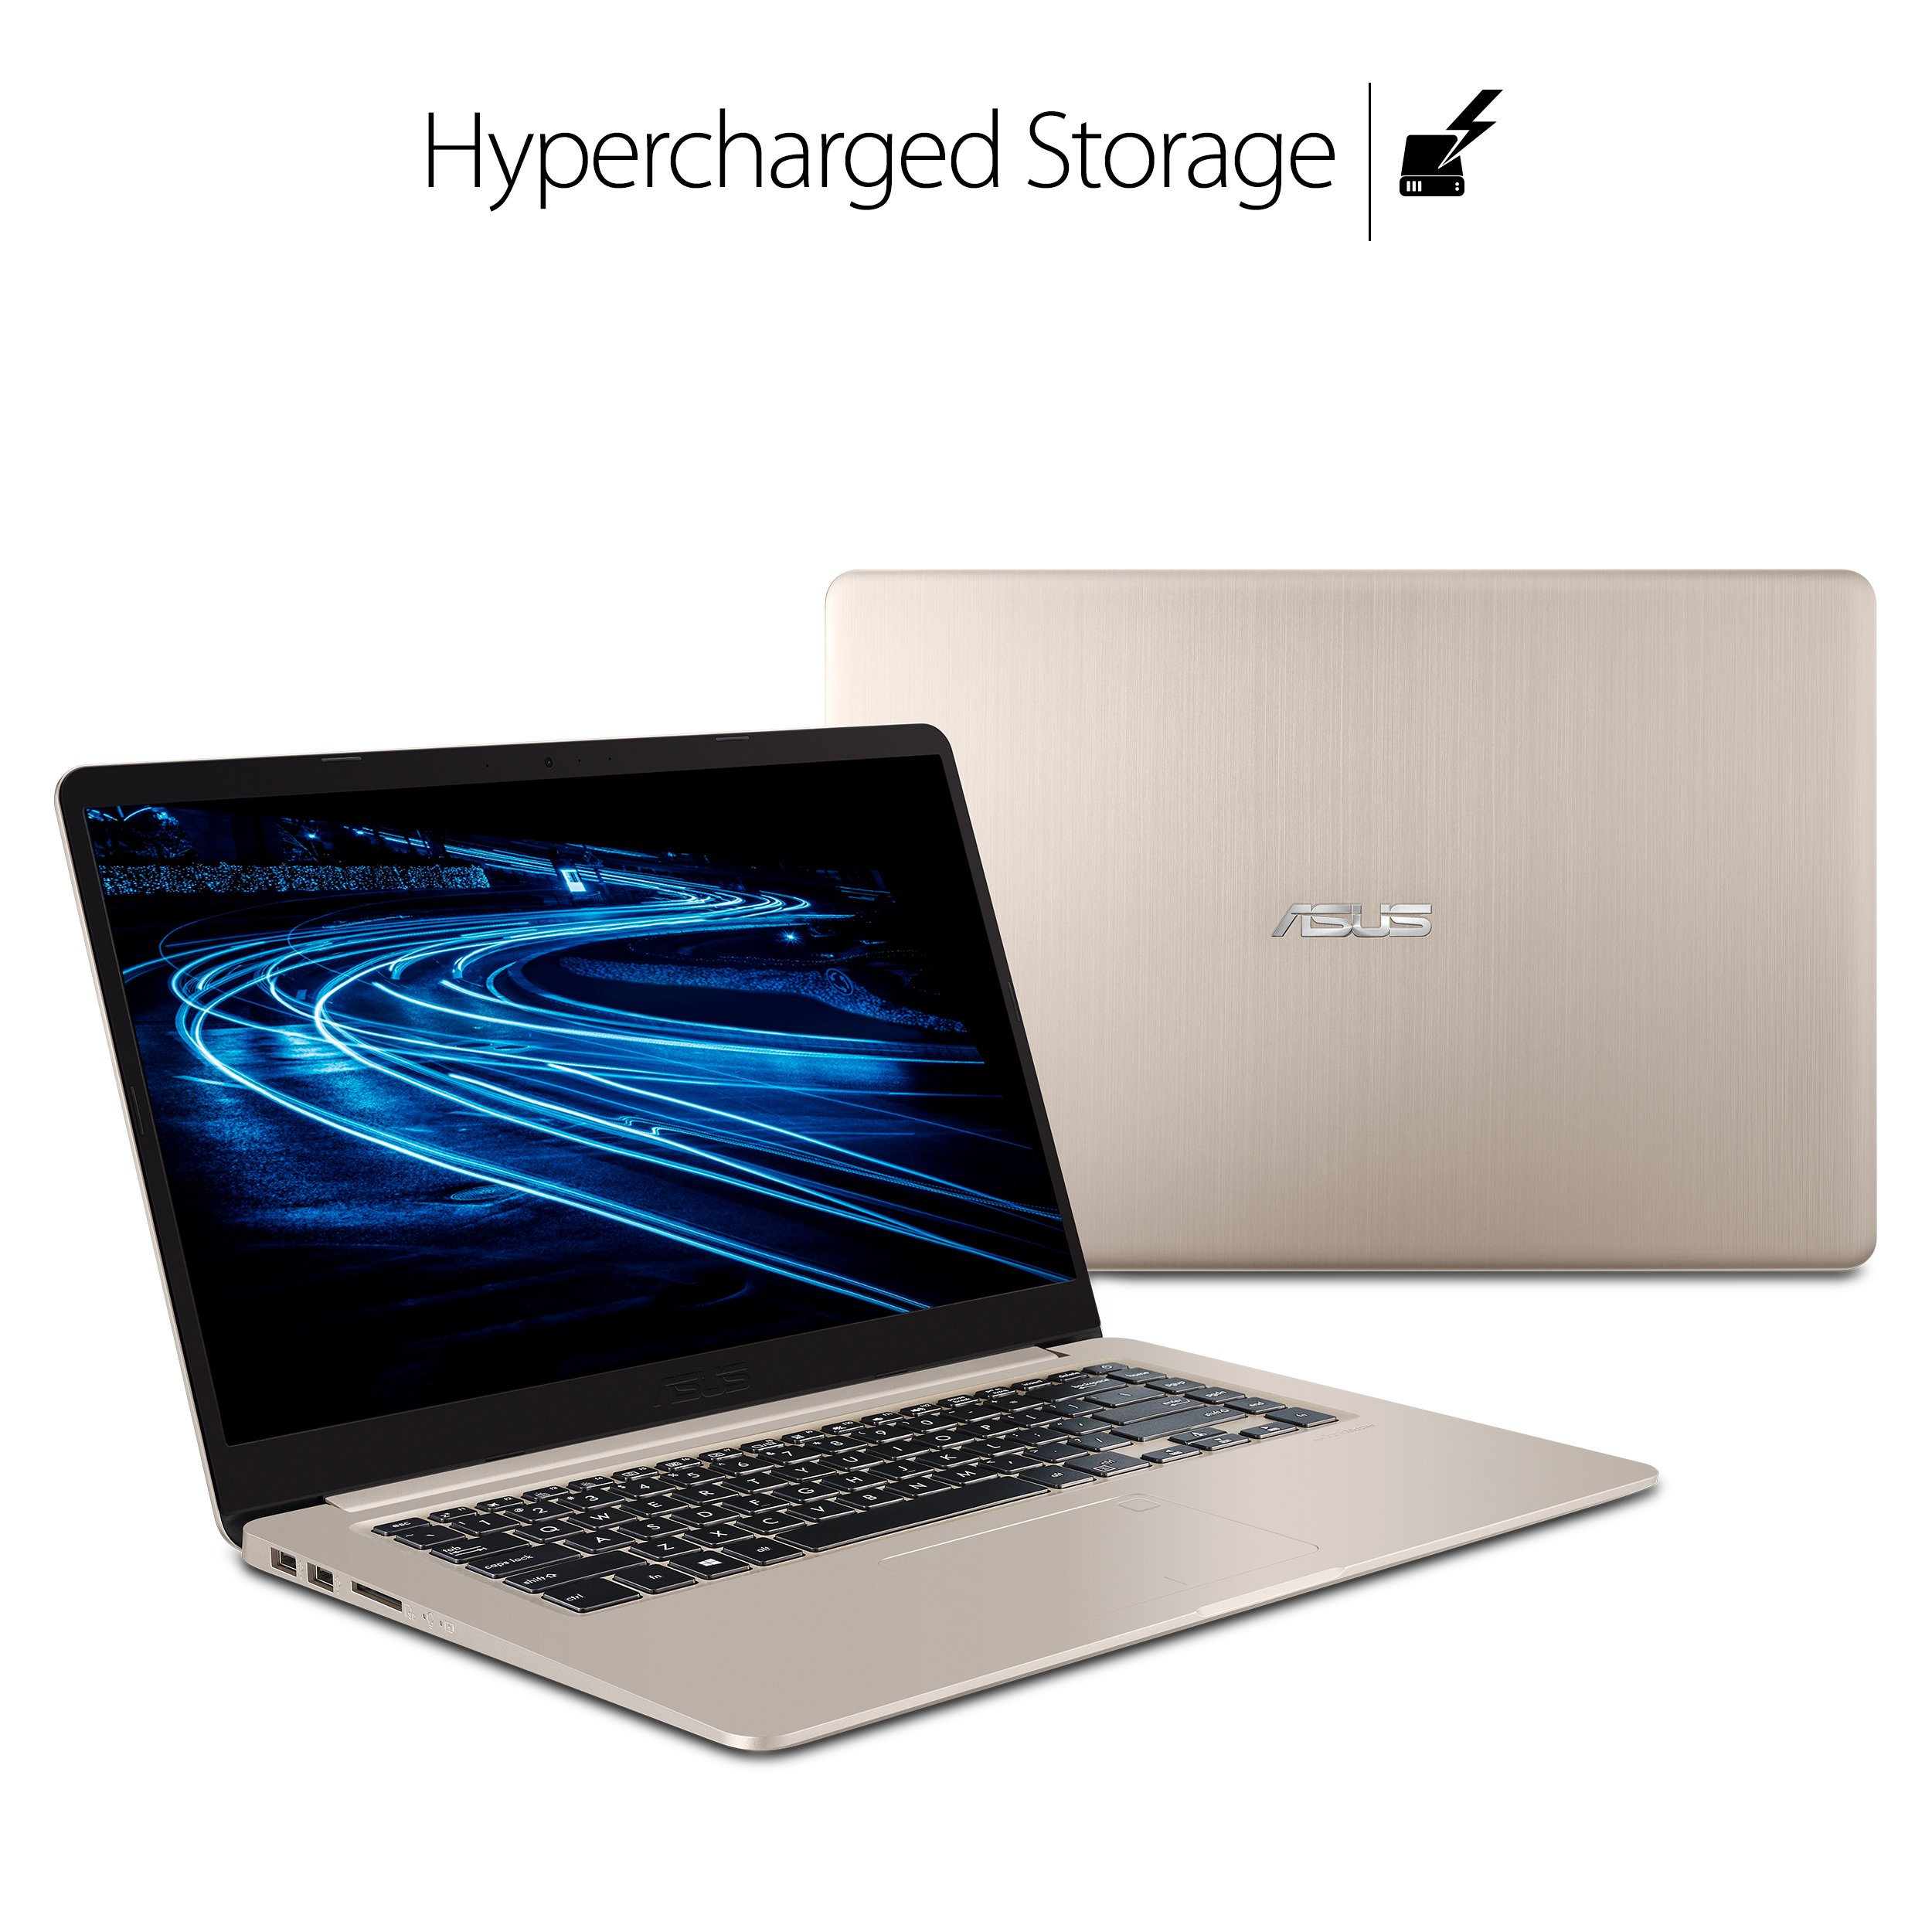 """ASUS VivoBook S Ultra Thin and Portable Laptop, Intel Core i7-8550U Processor, 8GB DDR4 RAM, 128GB SSD+1TB HDD, 15.6"""" FHD WideView Display, ASUS NanoEdge Bezel, S510UA-DS71 by ASUS (Image #5)"""